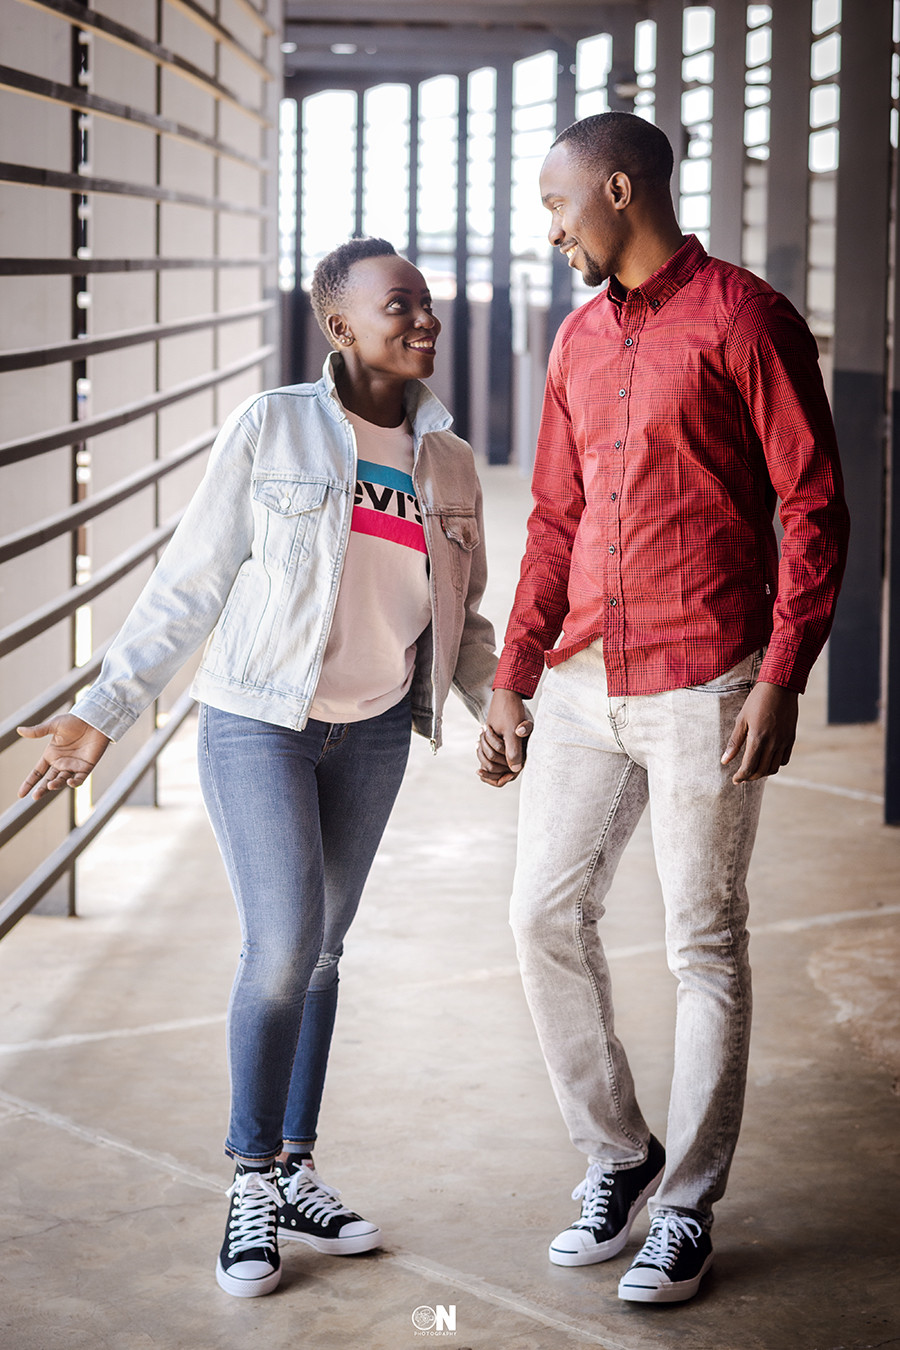 Male and female model modelling Levi t-shirt, shirt, jeans jacket, jeans and shoes at two rivers mall Nairobi, Kenya for Manix digital marketing campaign